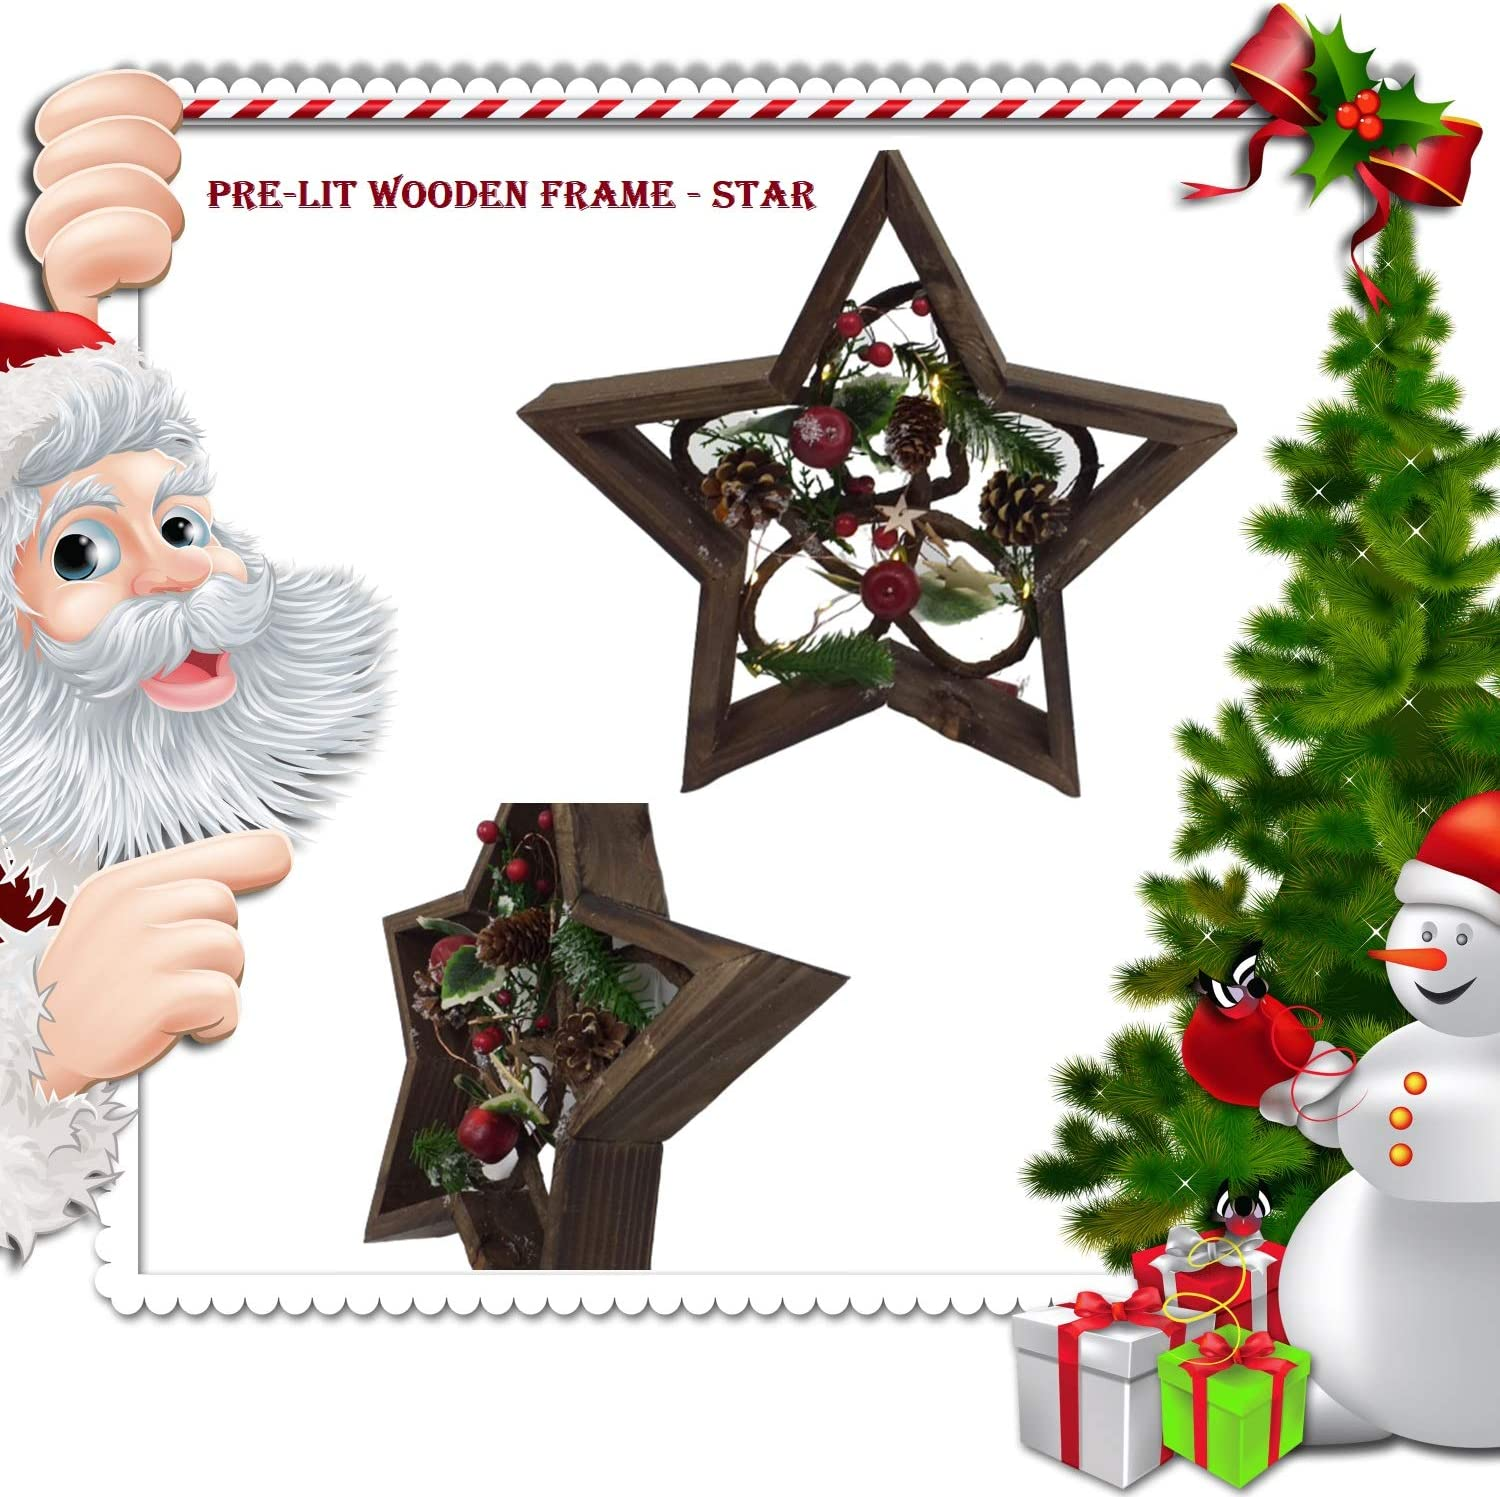 32cm LED Pre-Lit Decorated with Leaves Pine Cones Berries 3D Nordic Christmas Scene Star Shape Wooden Frame Tabletop Decorations Xmas Ornament Gifts